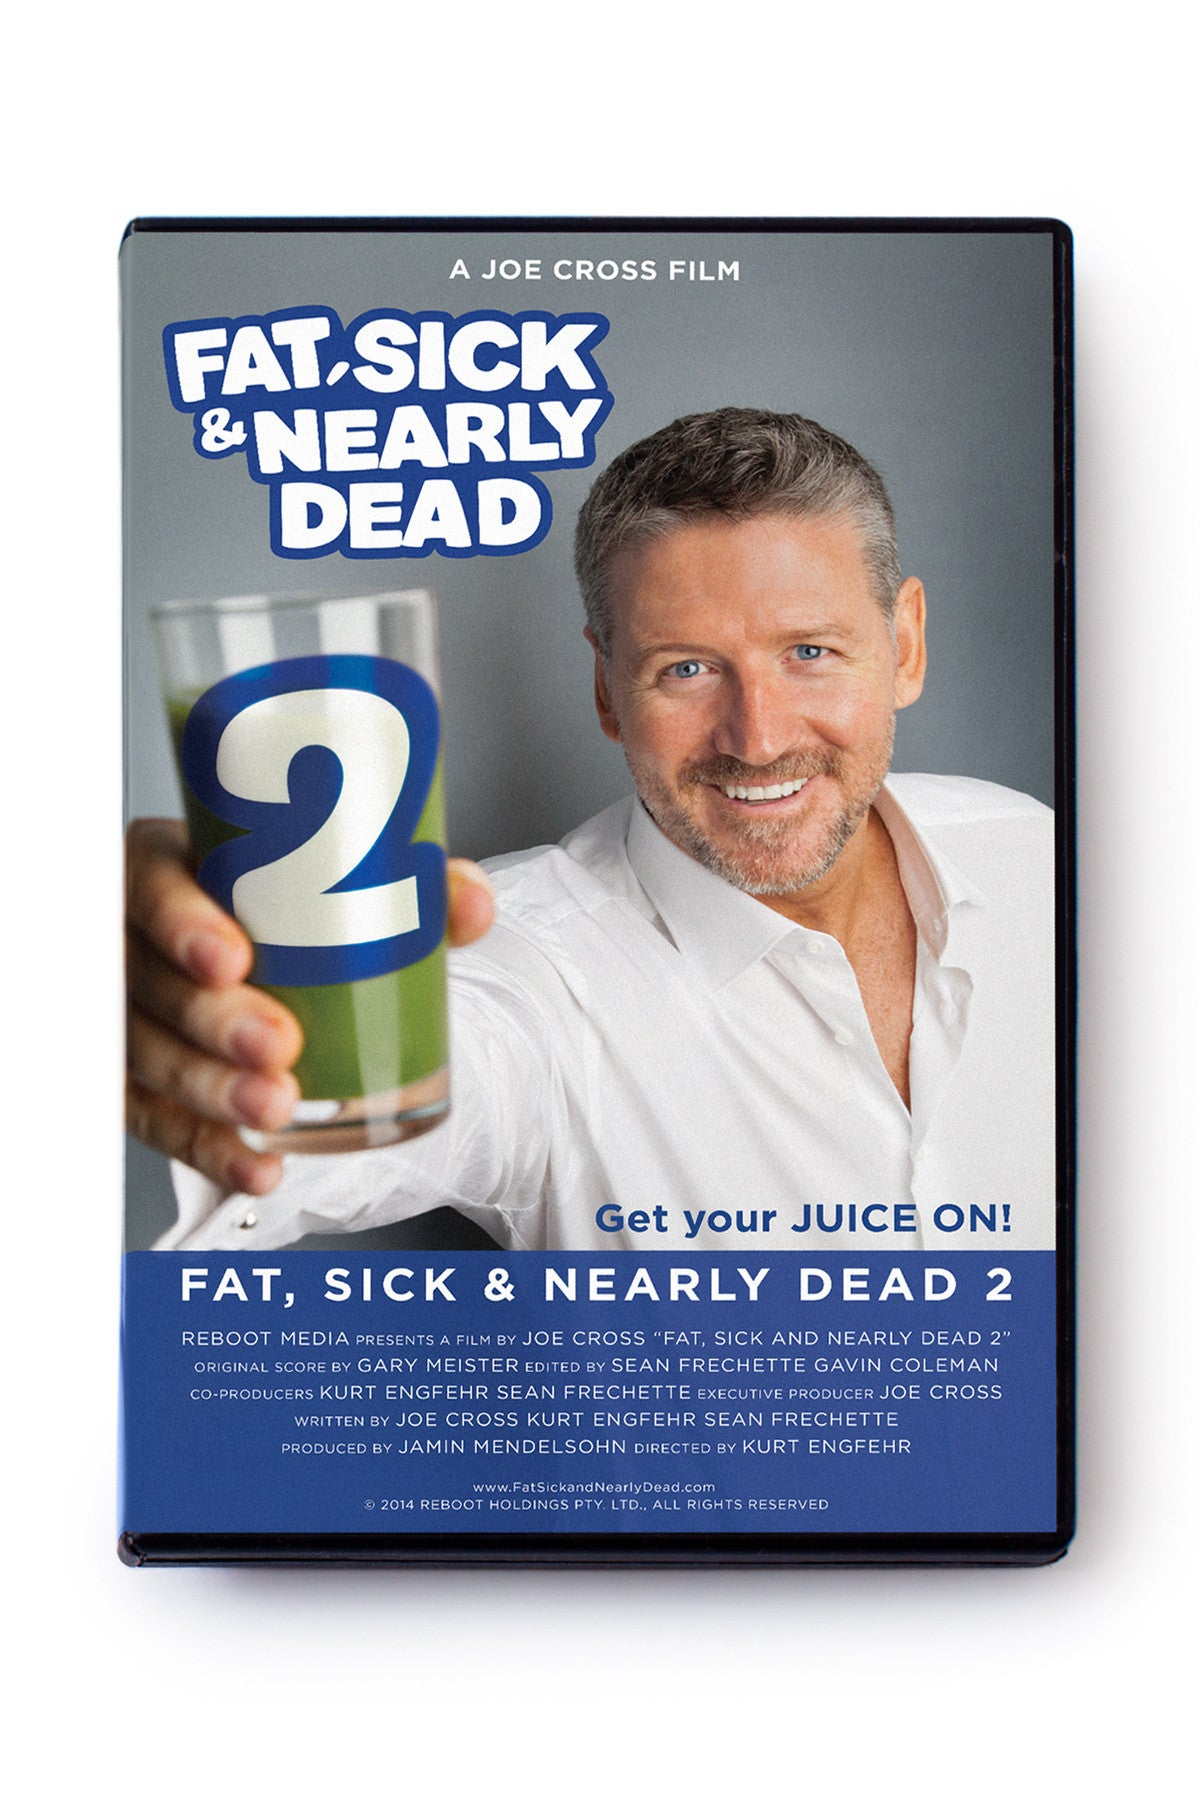 Fat, Sick & Nearly Dead 2 - Public Screening Package